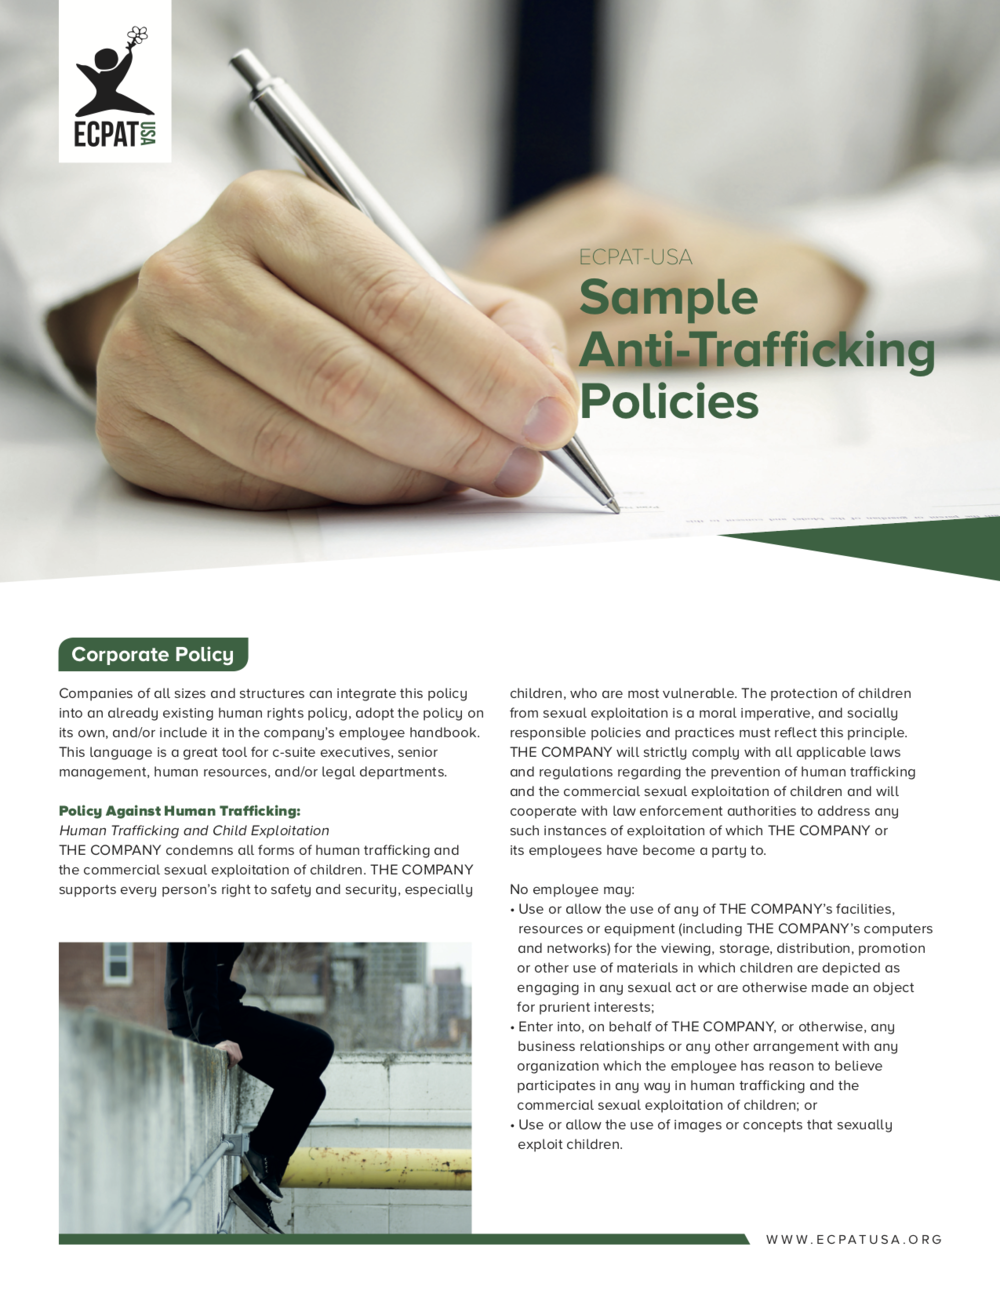 Corporate Anti-Trafficking Policy, RFP Language, and Contract language